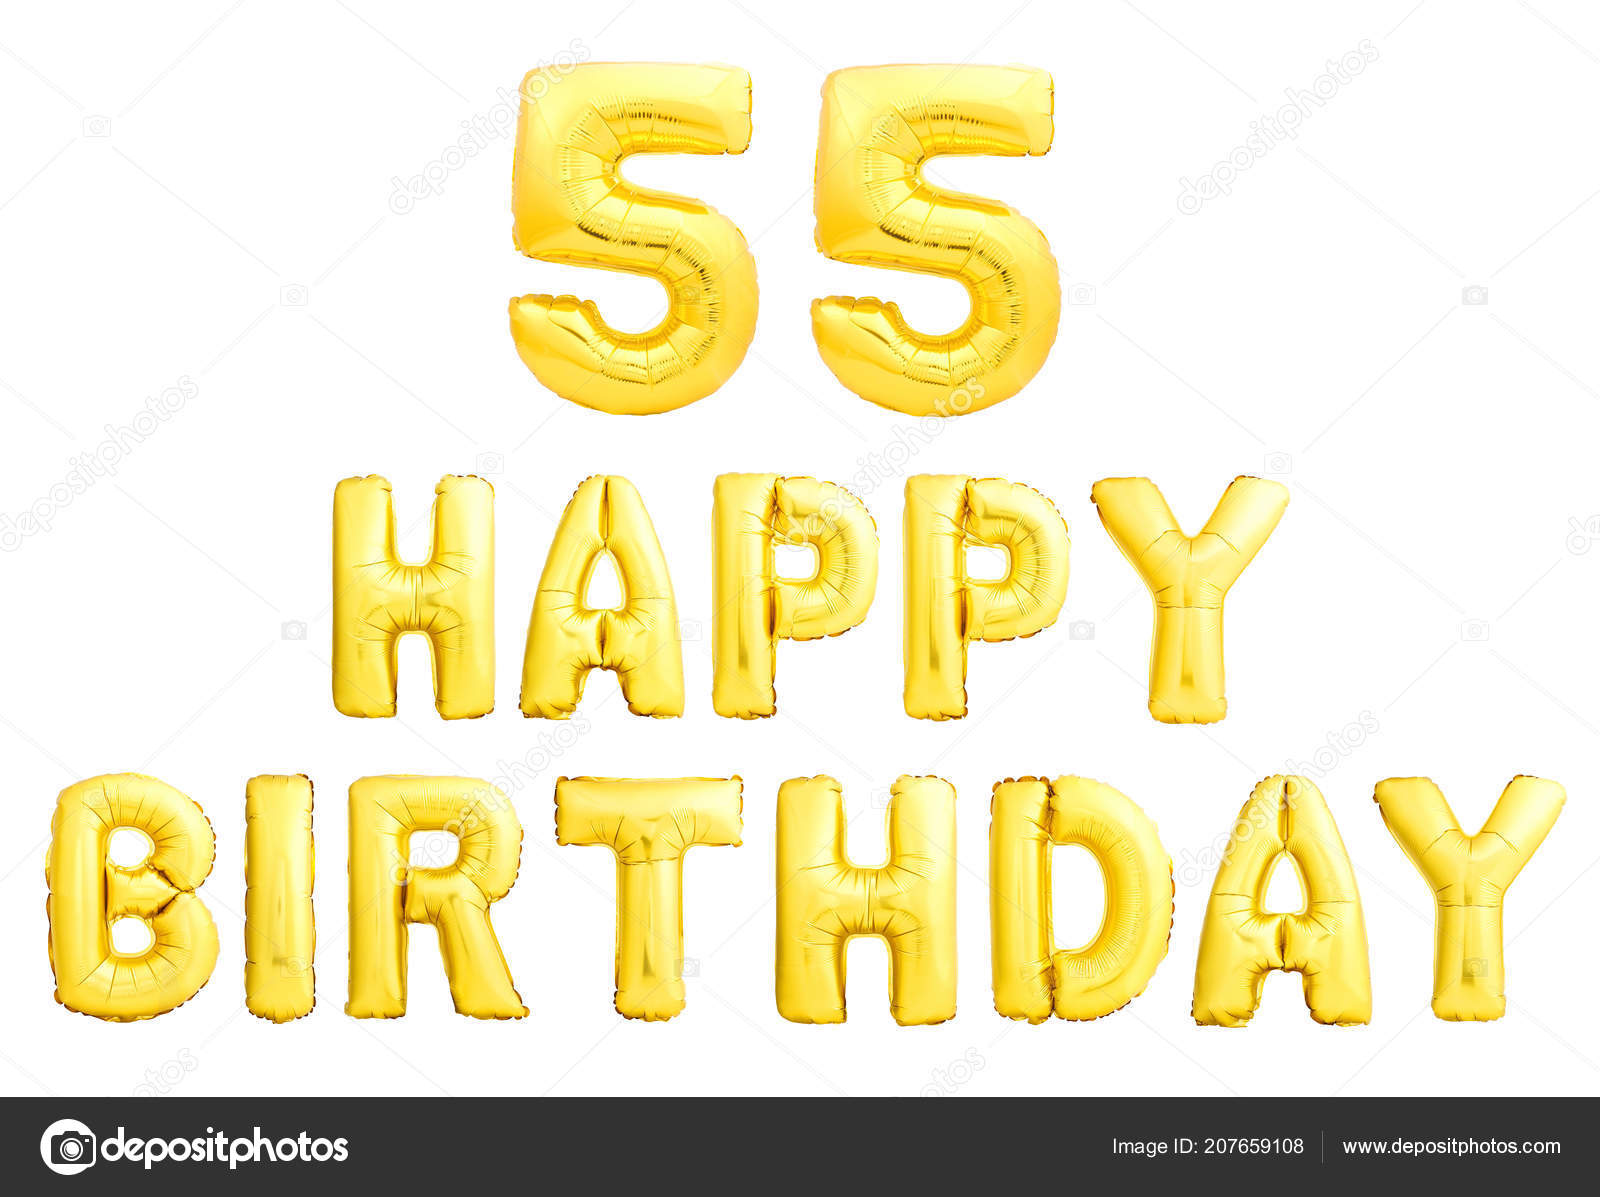 Happy Birthday 55 Years Golden Inflatable Balloons Isolated On White Background 55th Anniversary Celebration Photo By Dmitry